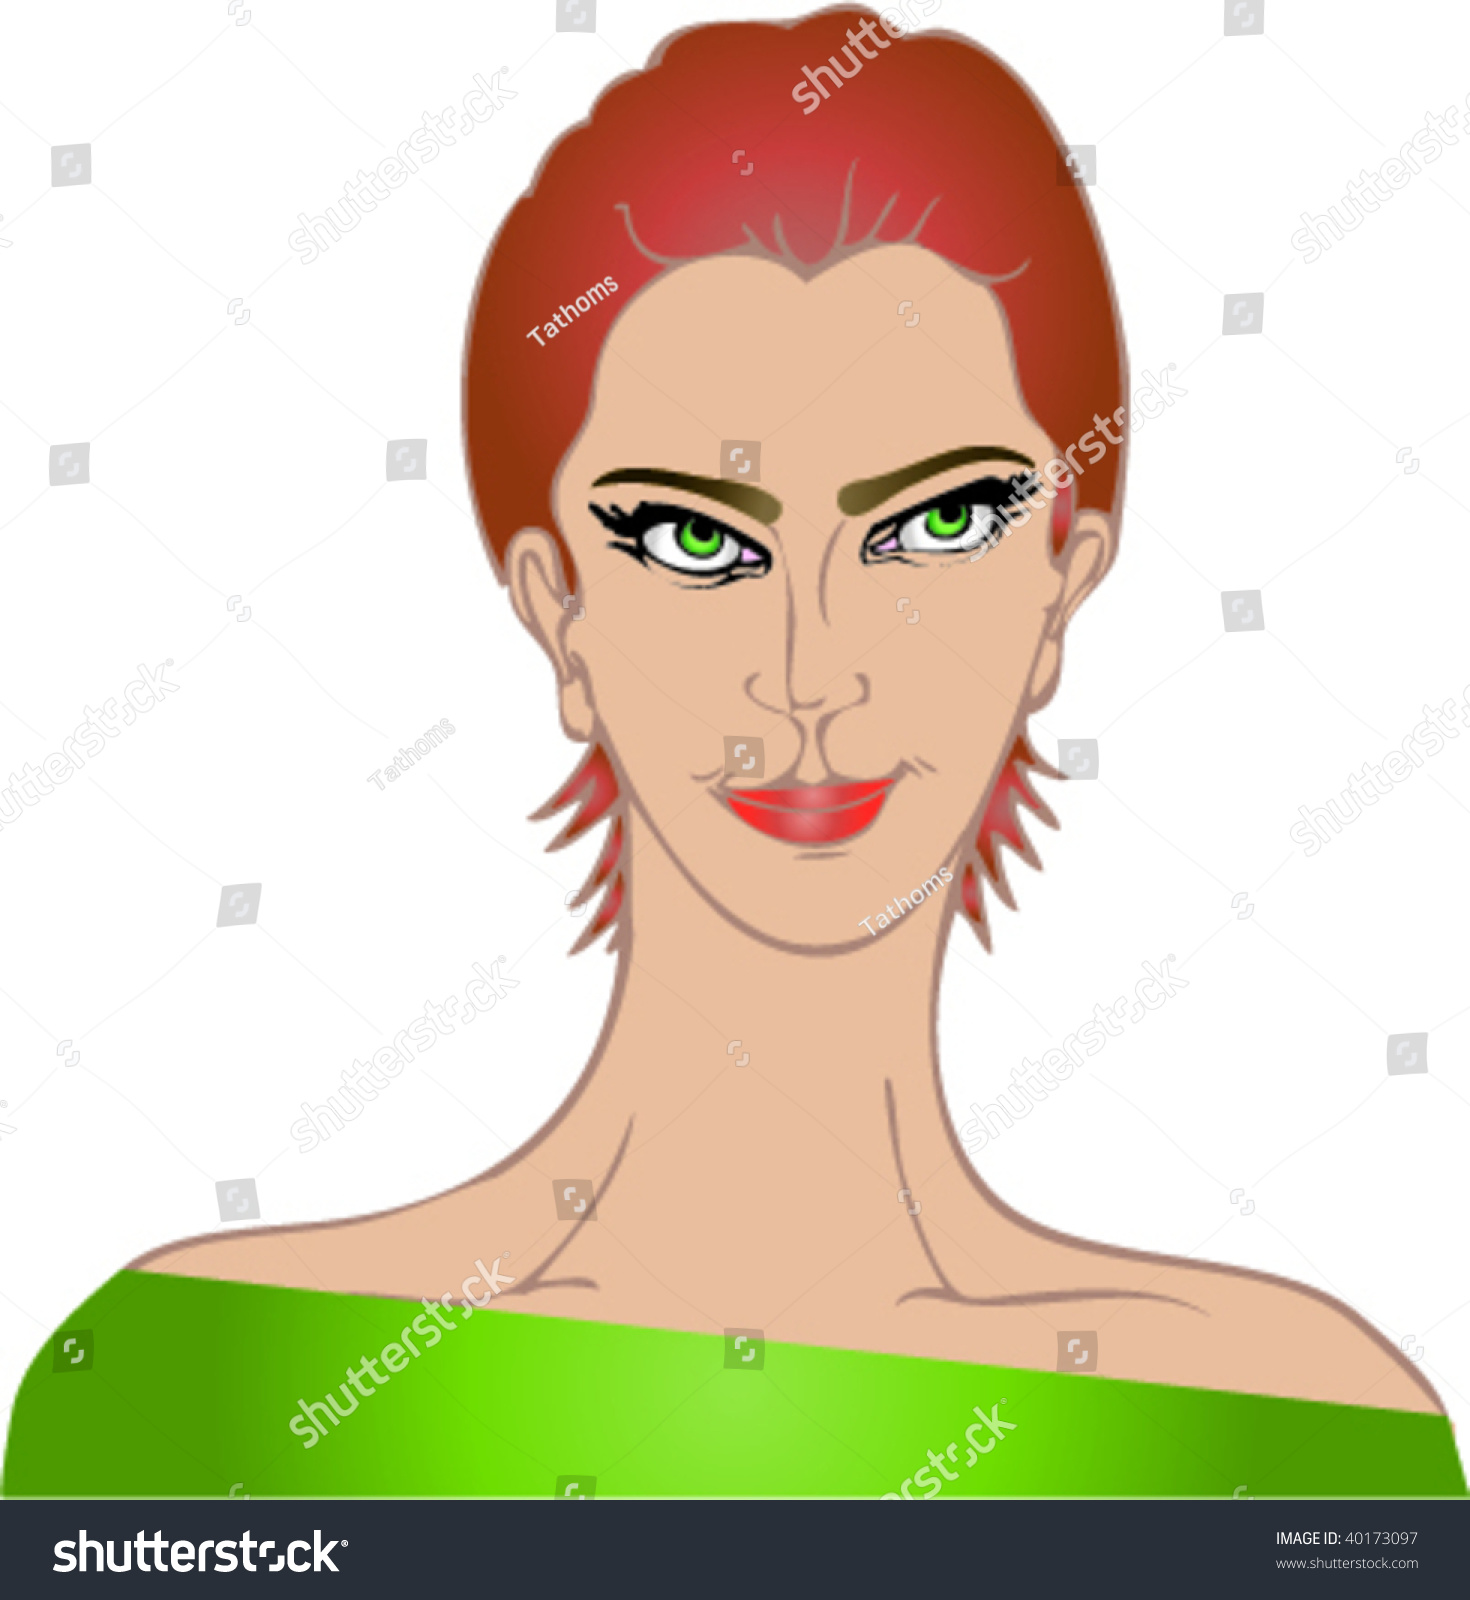 red head woman, fictional